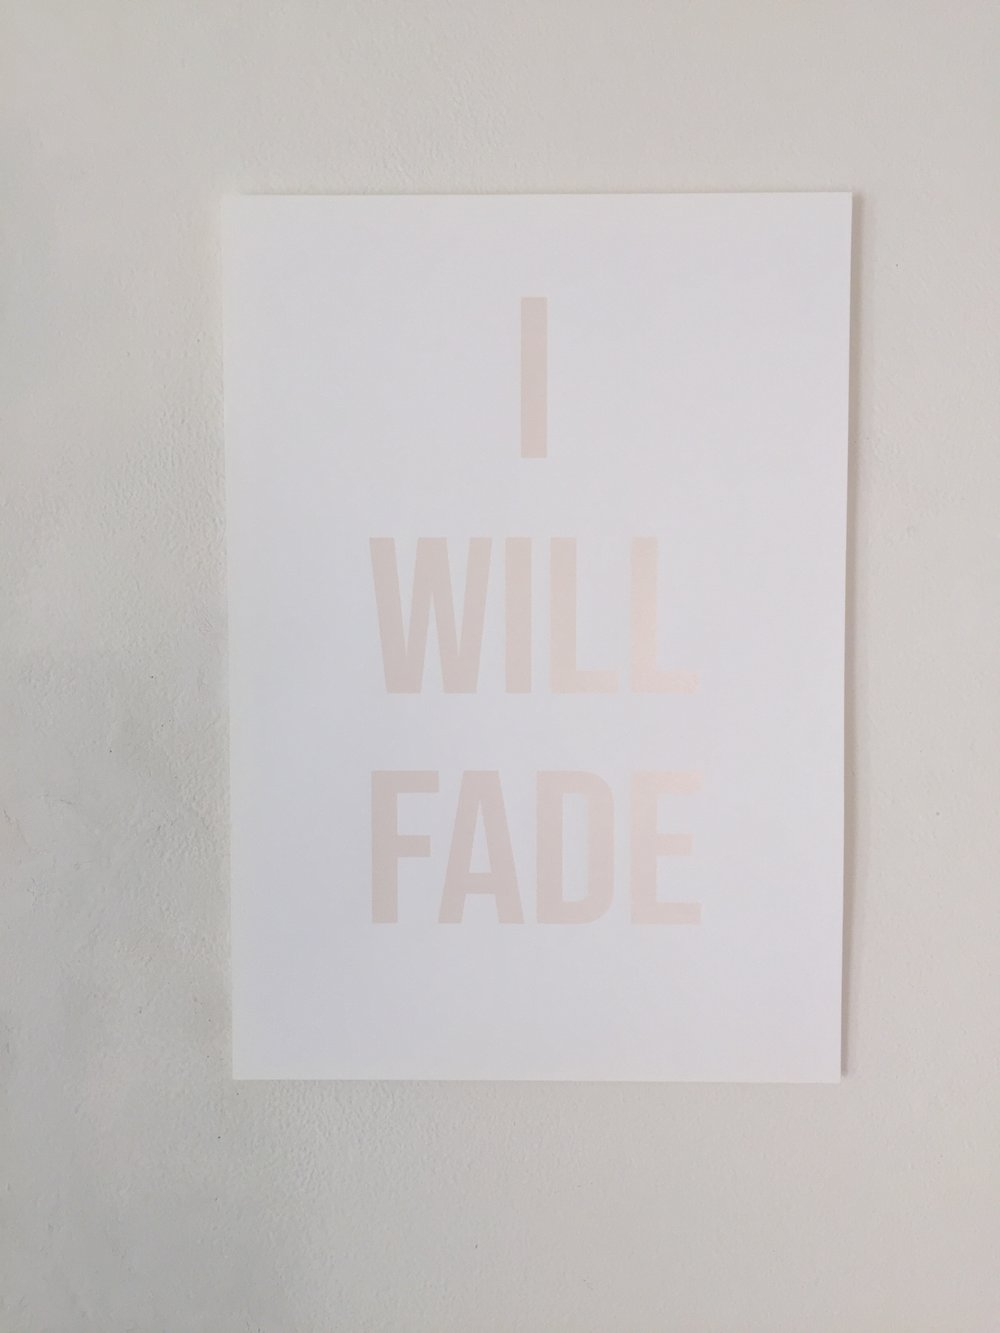 I will fade / 2018 /Screen print with natural pigment / Limited edition of 15 / 50cm x 35 cm